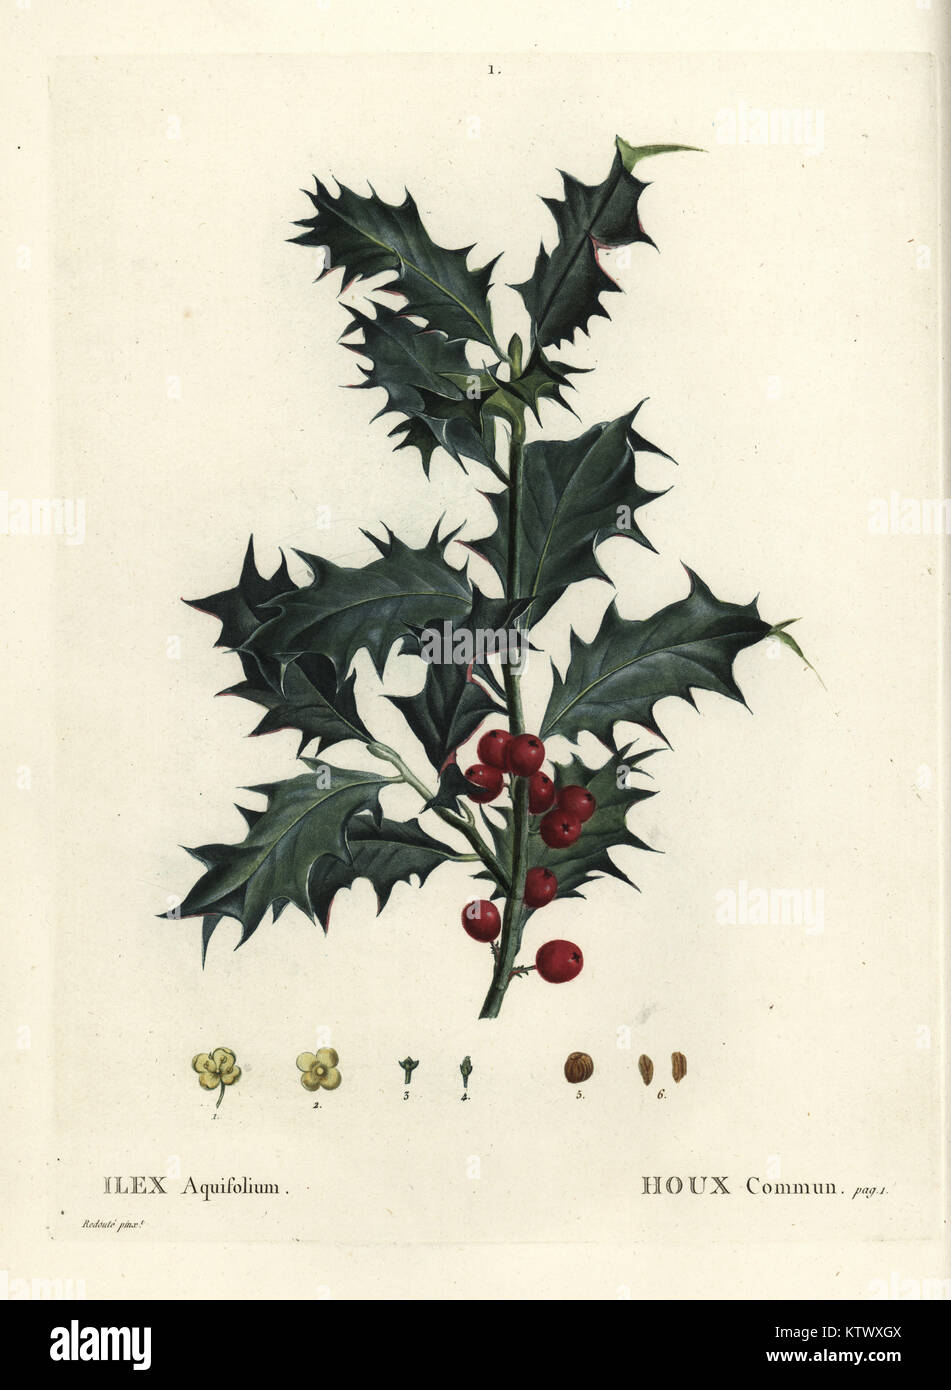 Common holly, Ilex aquifolium. Handcoloured stipple engraving after an illustration by Pierre-Joseph Redoute from - Stock Image